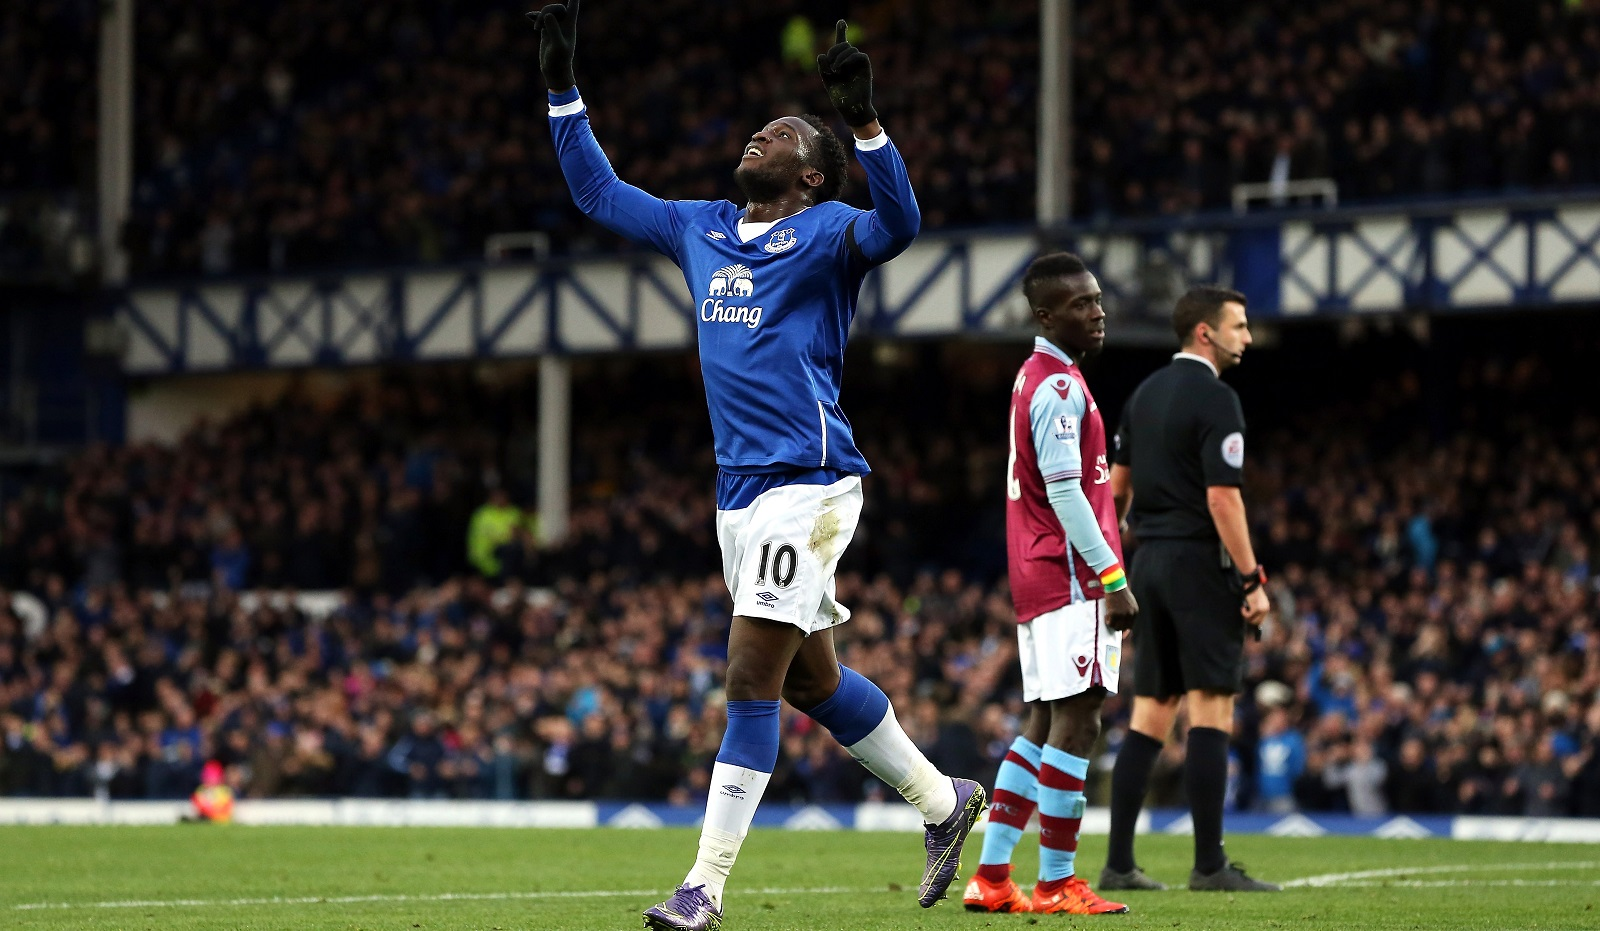 In-form striker Romelu Lukaku, left, leads Everton against Crystal Palace on Monday. (Getty Images)